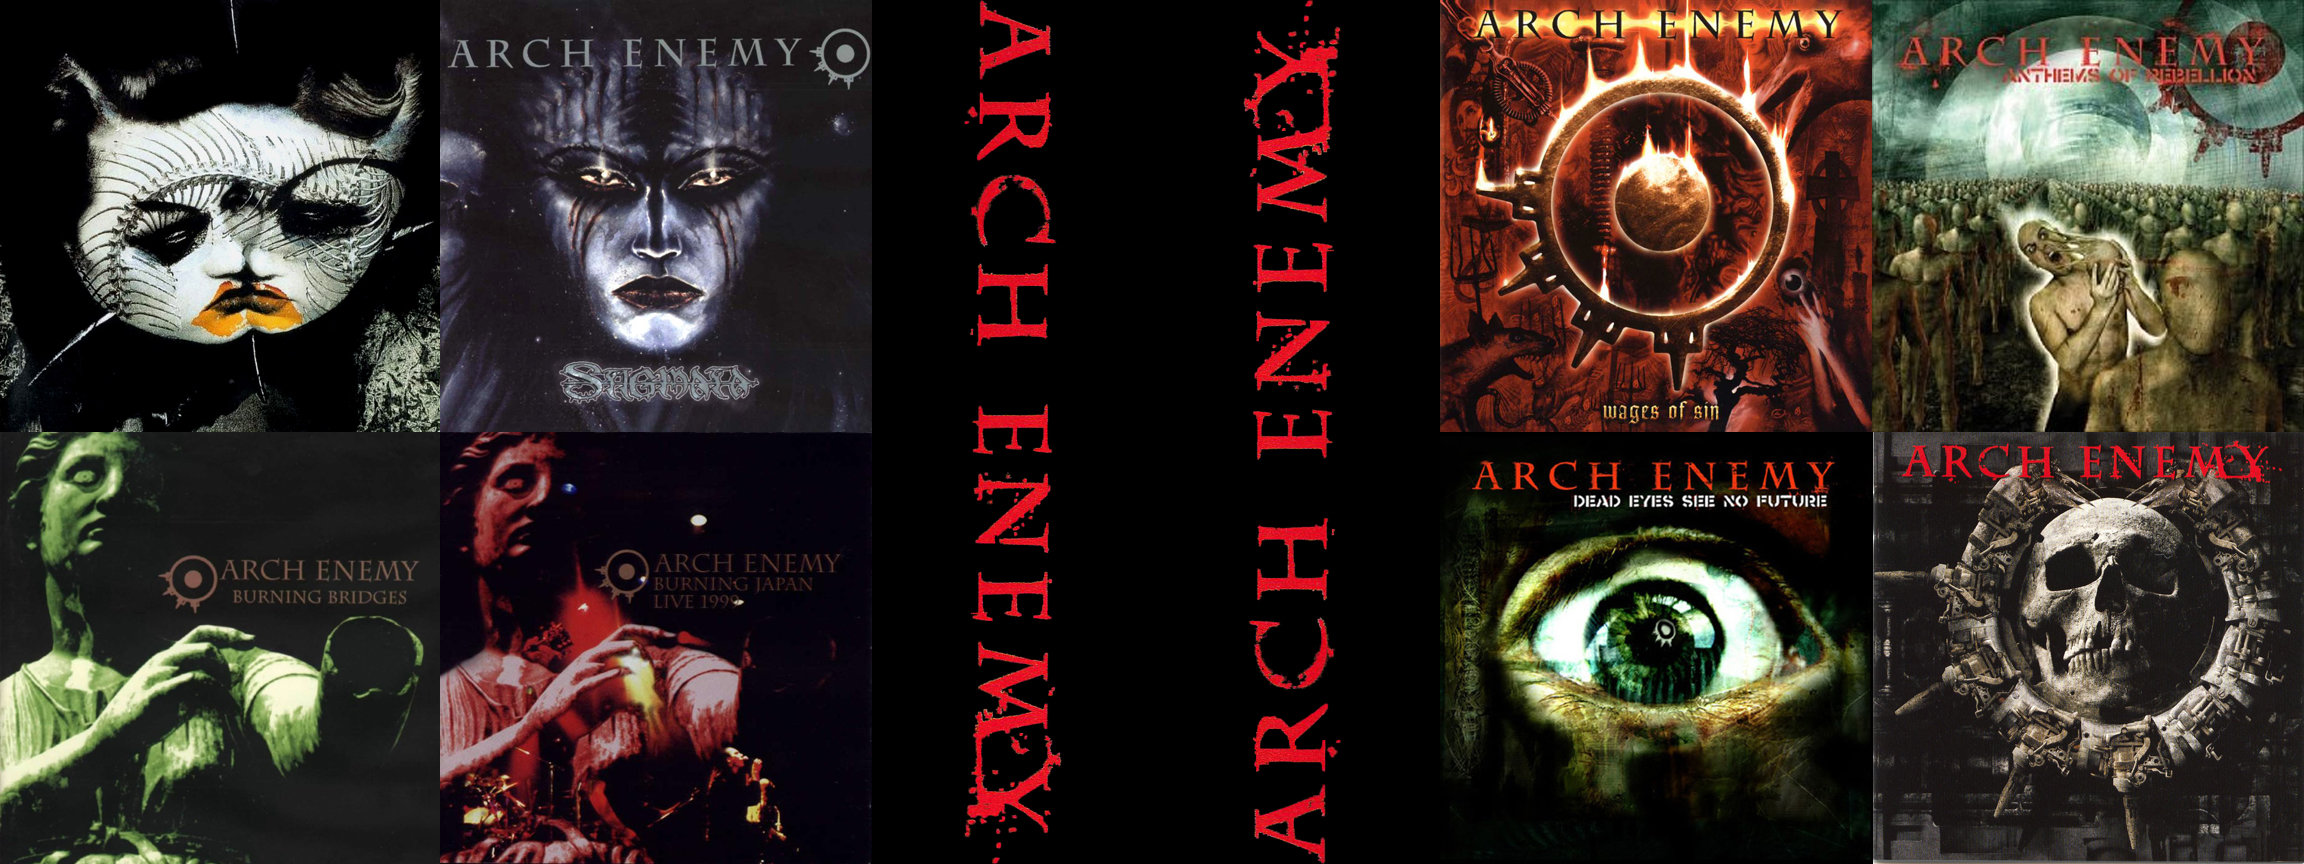 Awesome Arch Enemy free wallpaper ID:347735 for dual monitor 2304x864 PC